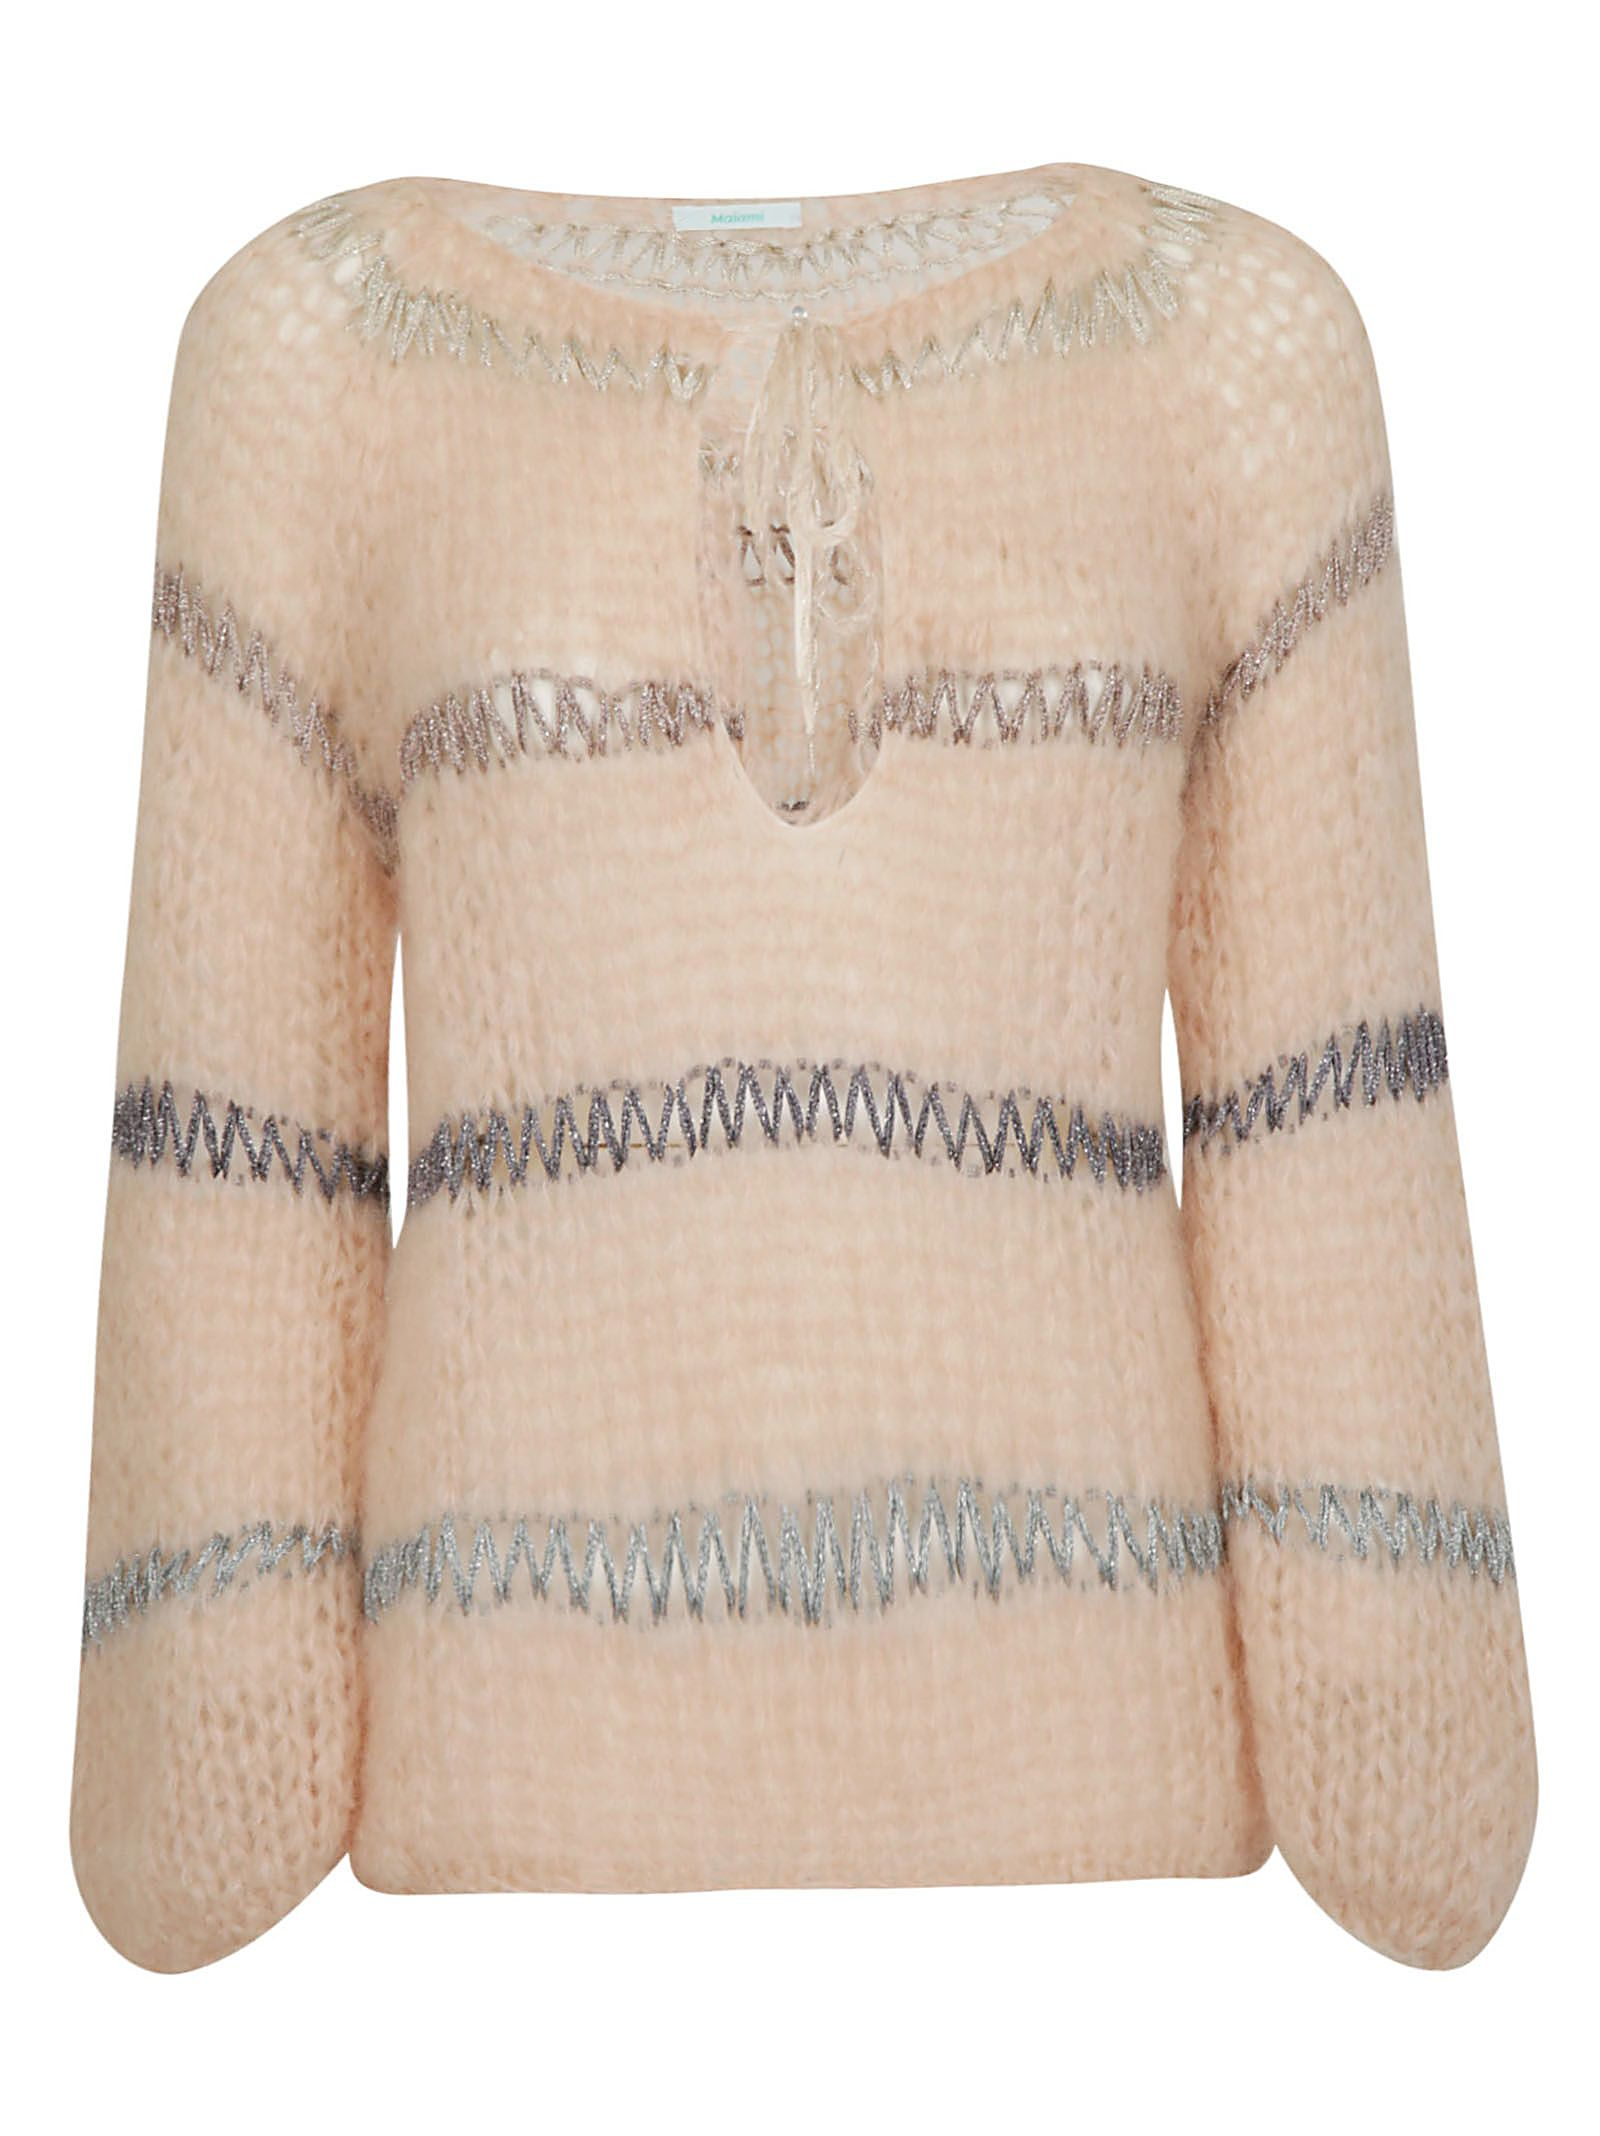 MAIAMI Maiami Knitted Sweater in Nude